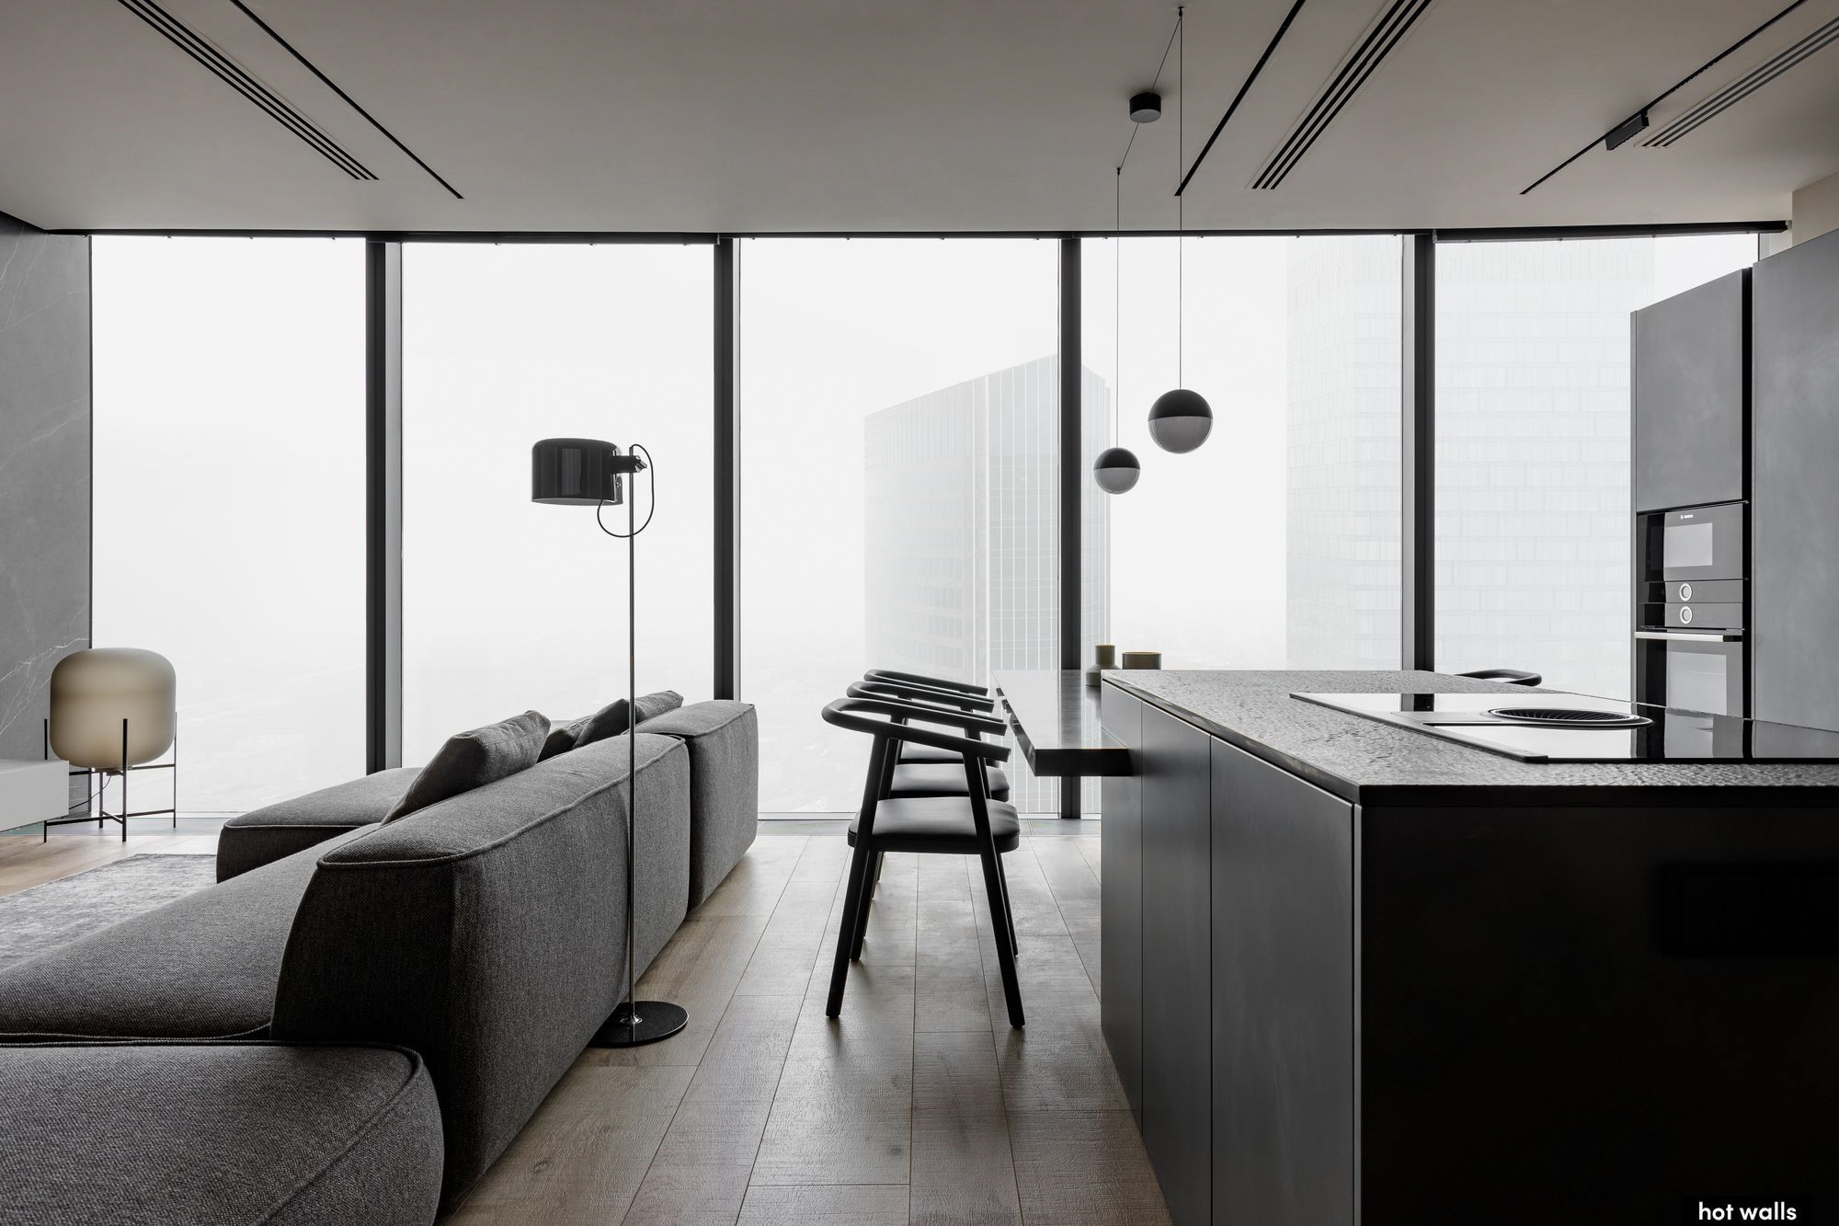 Federation Tower 79th Floor Apartment Interior Moscow, Russia - Hot Walls